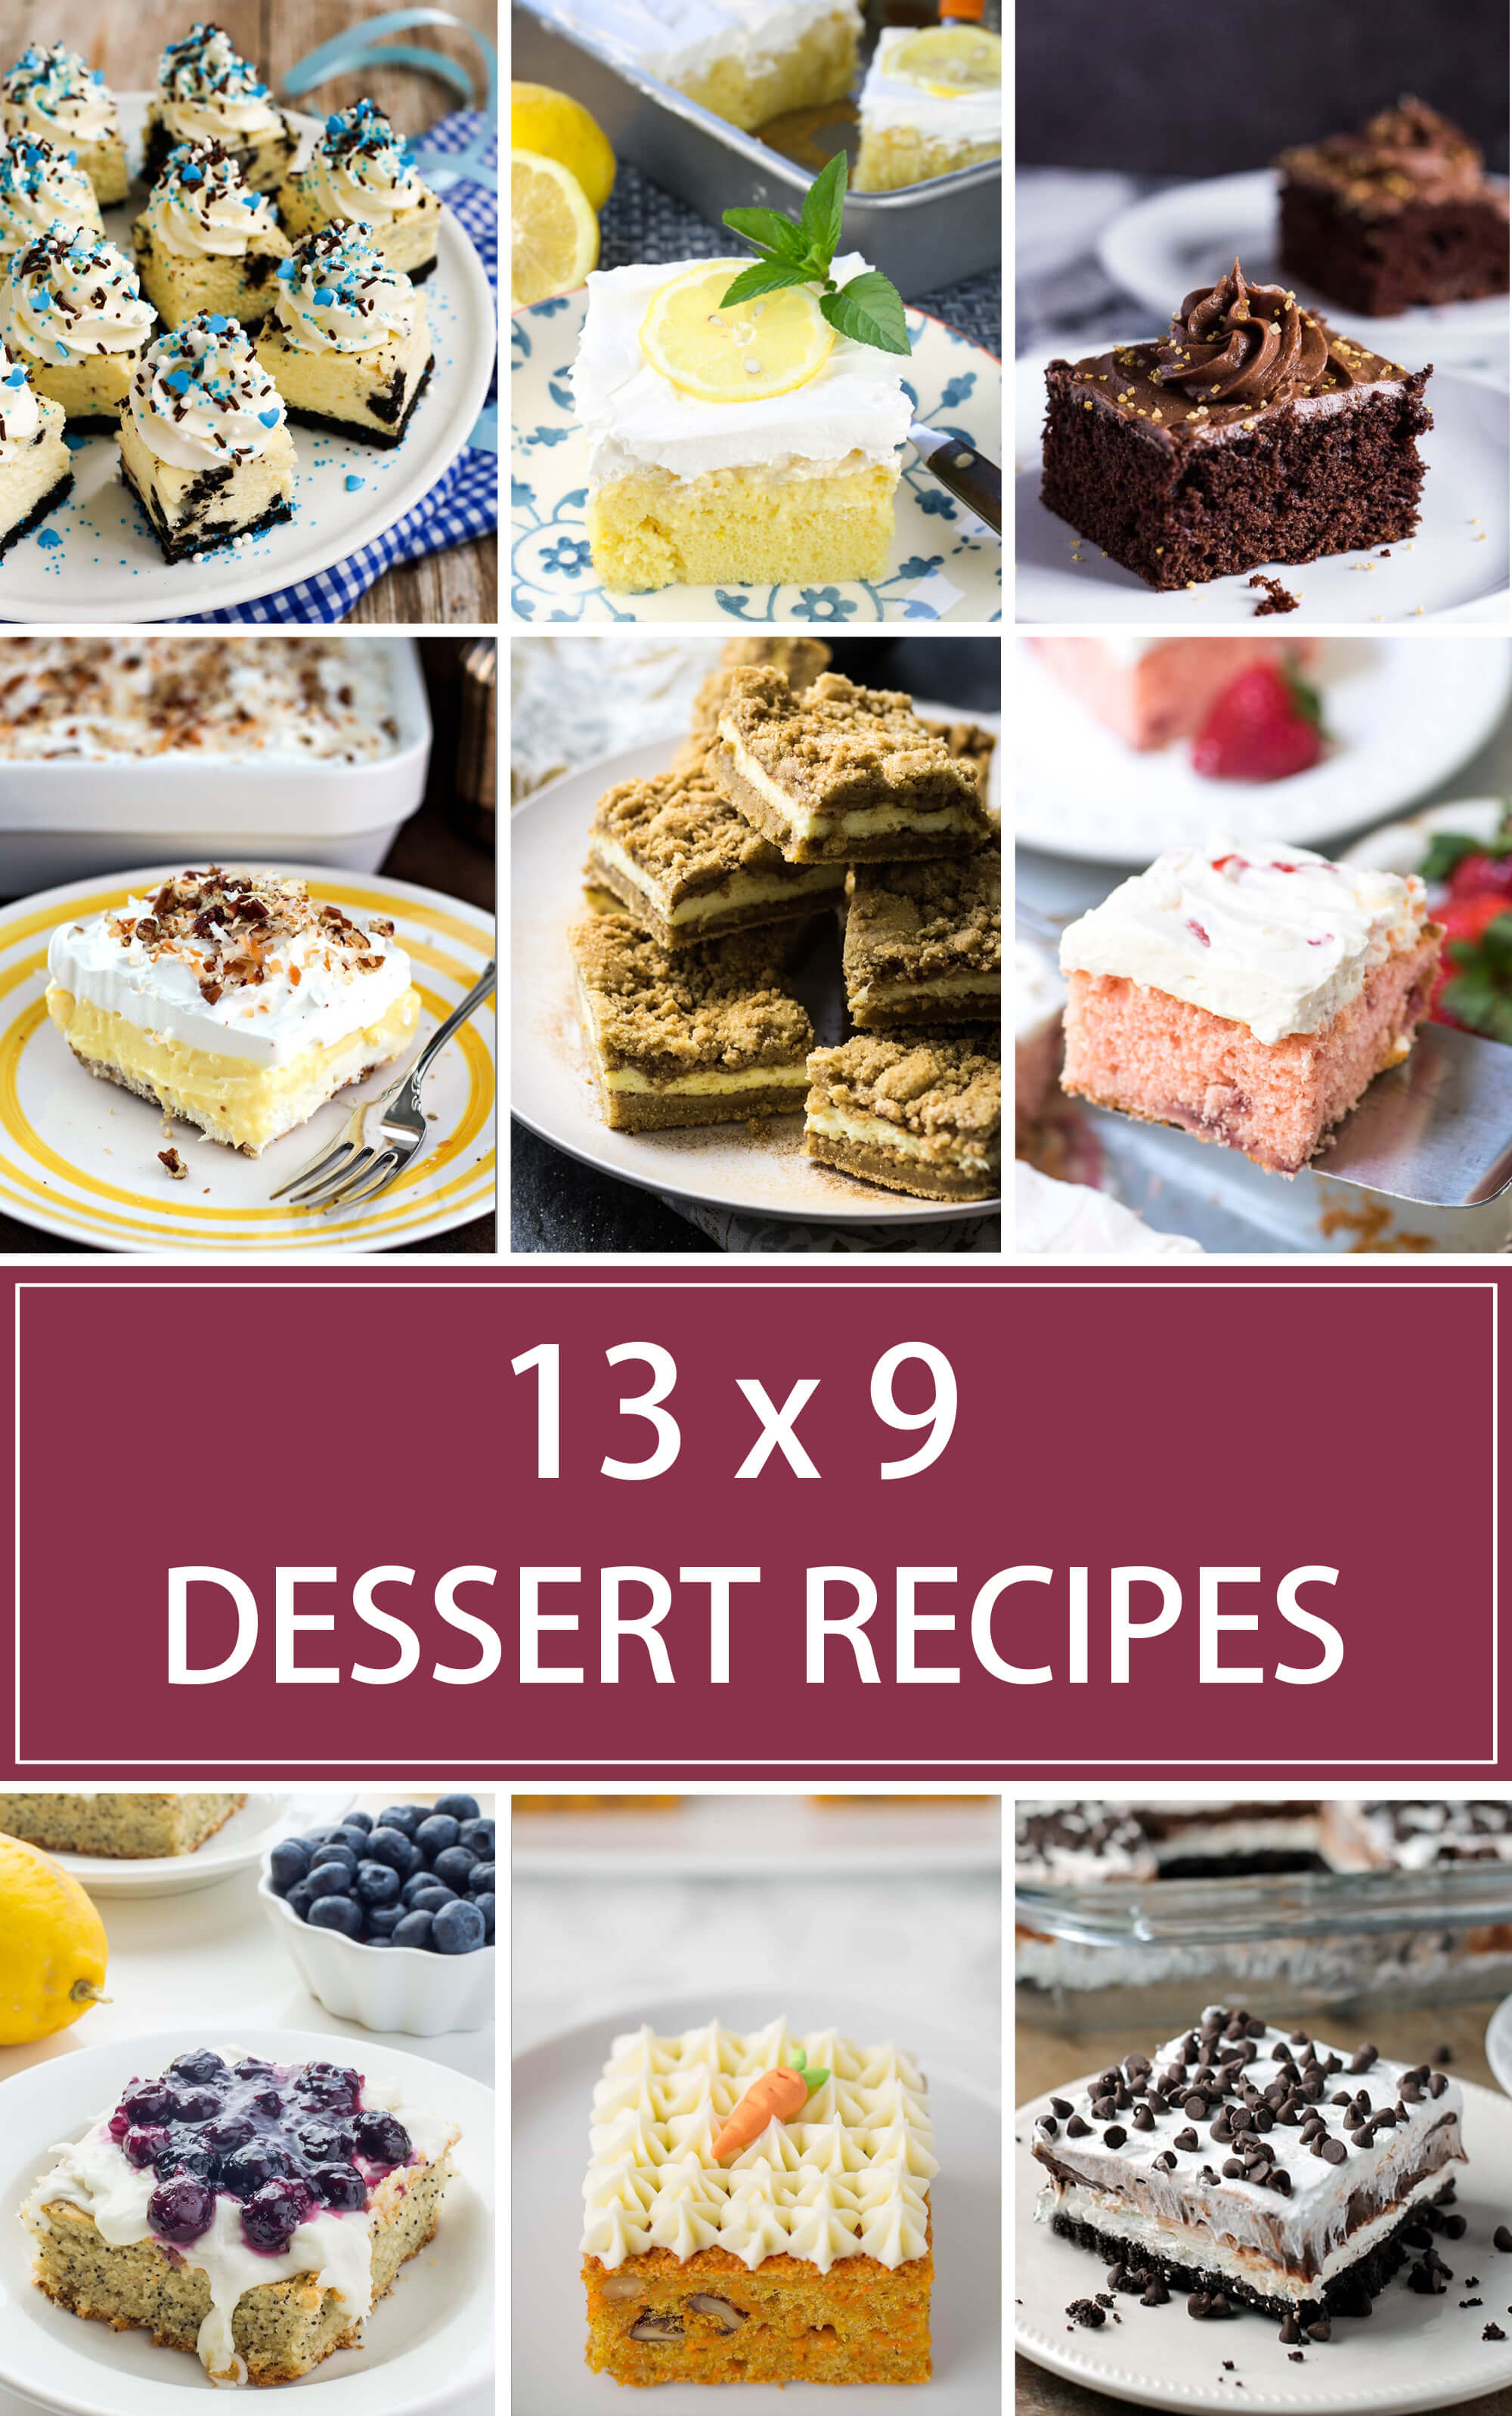 Christmas Desserts For A Crowd  13 x 9 Dessert Recipes for a Crowd Valerie s Kitchen